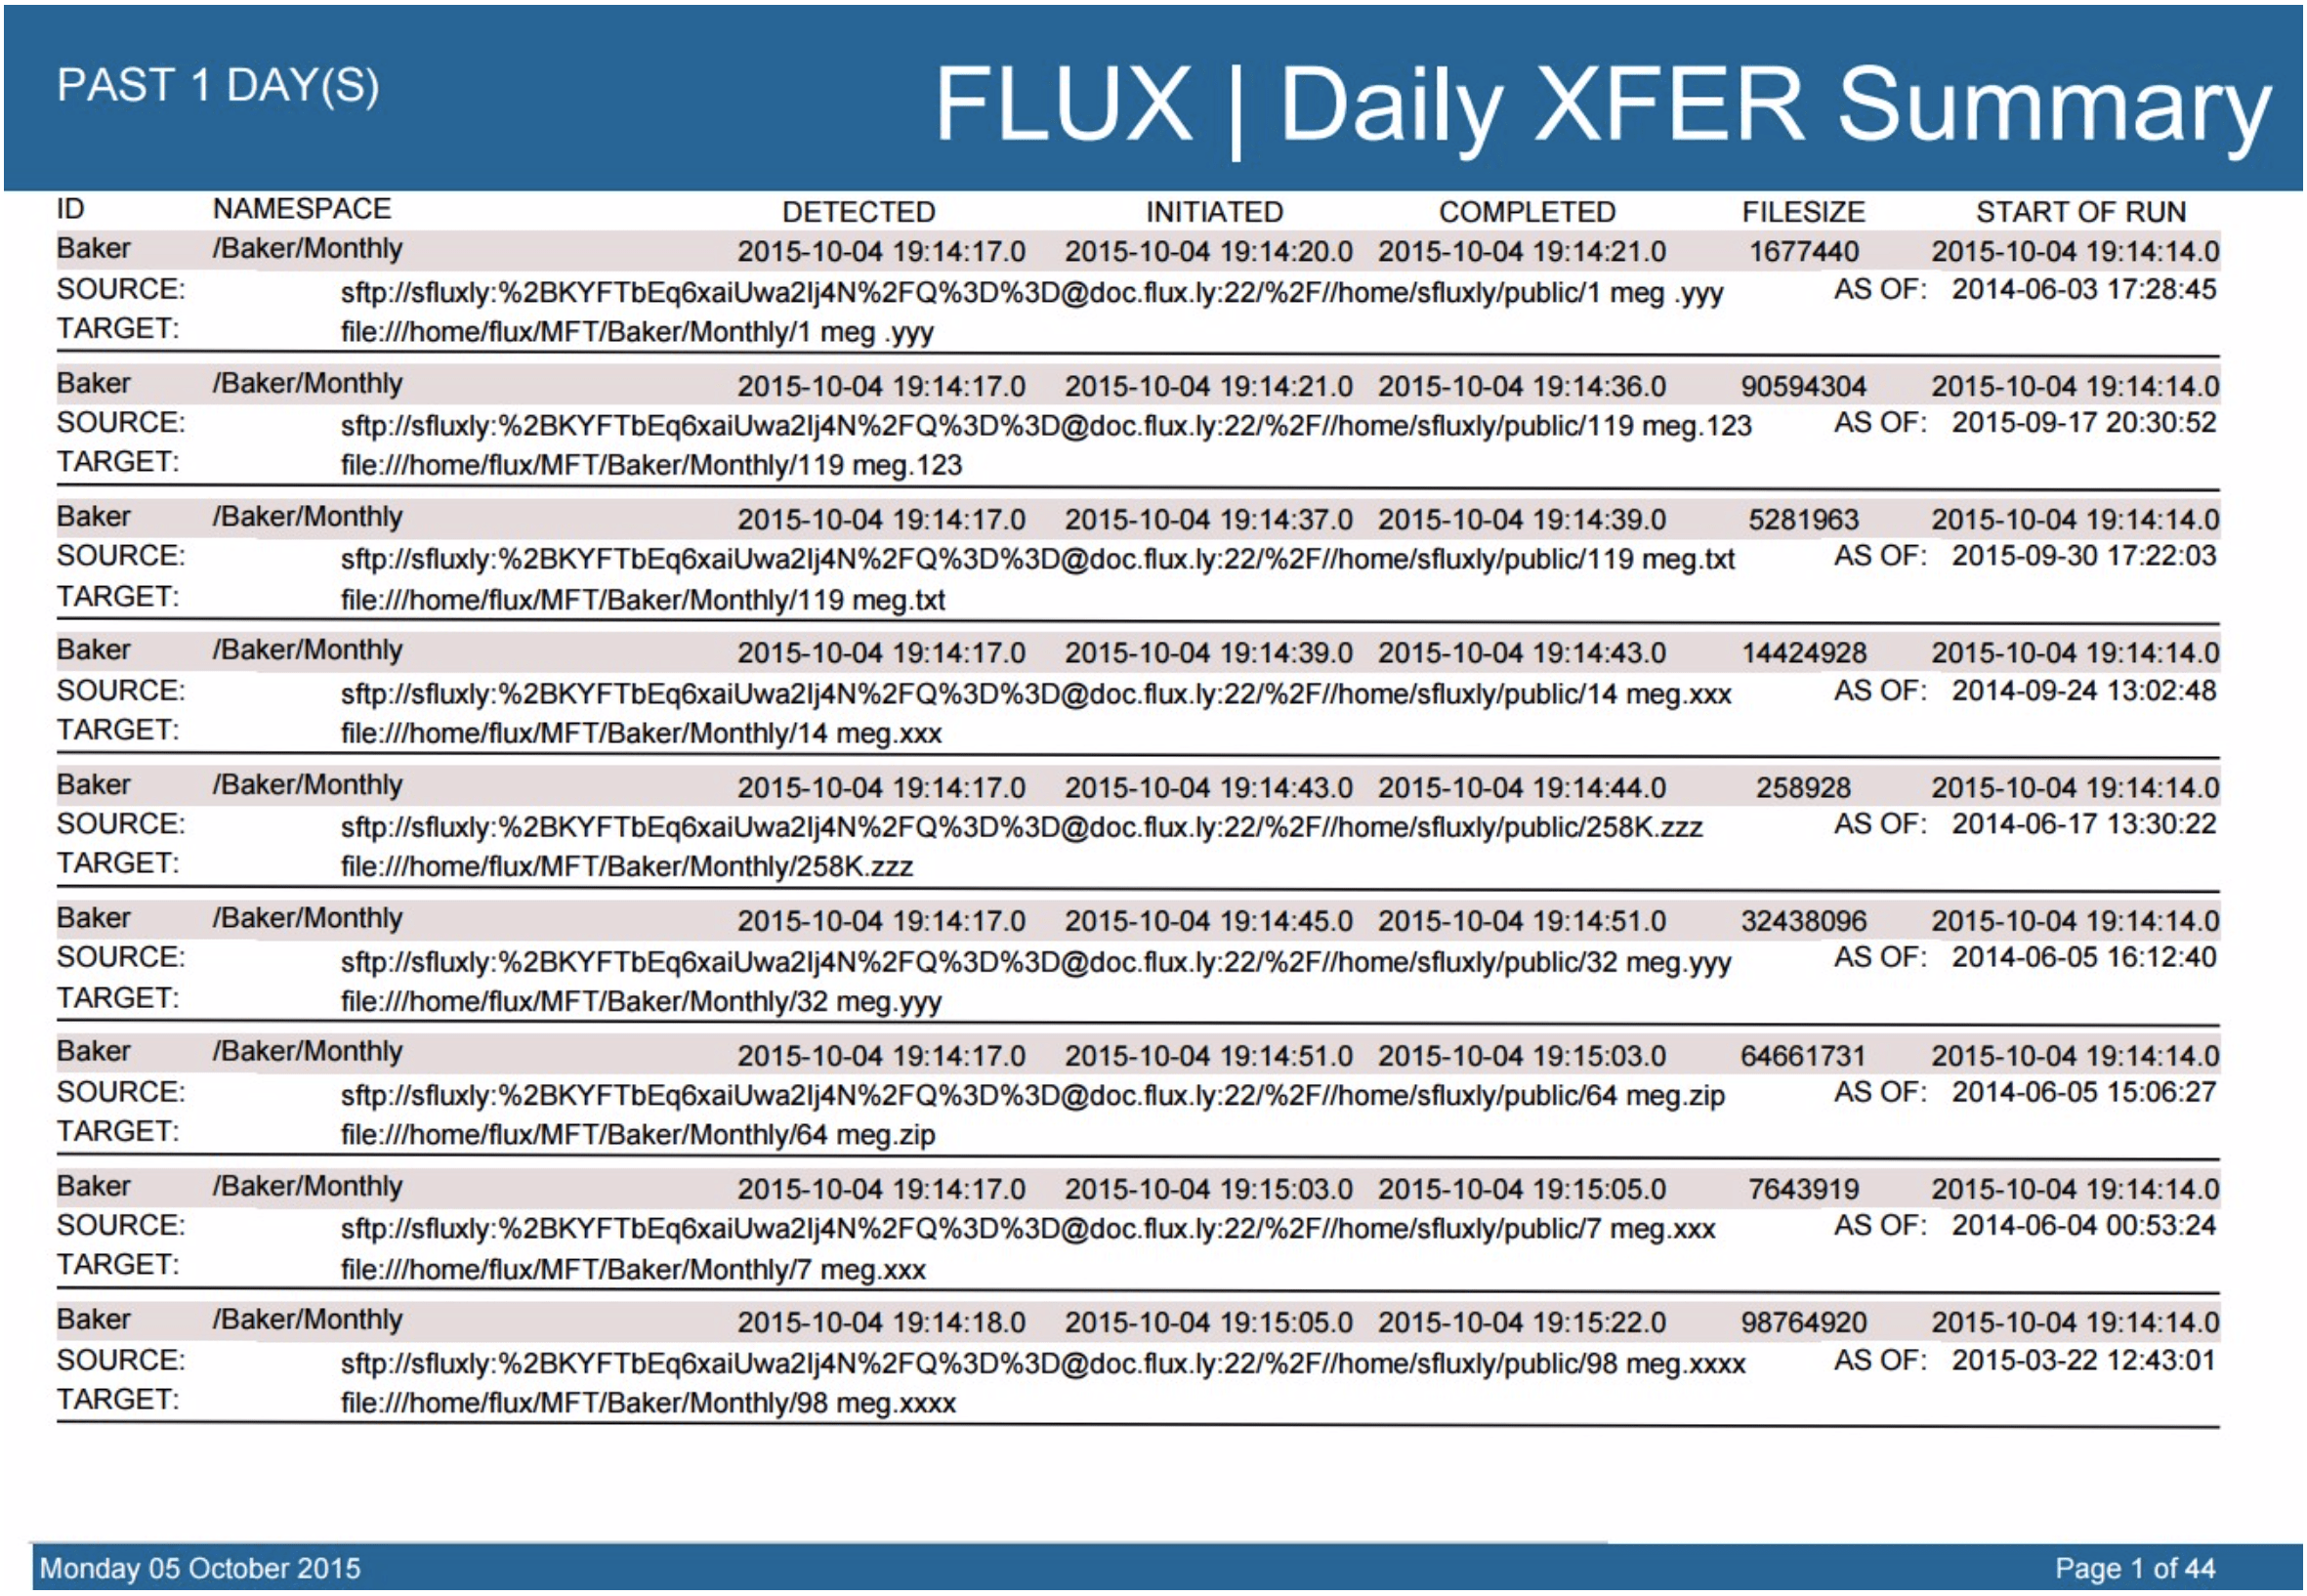 flux jasper report summary